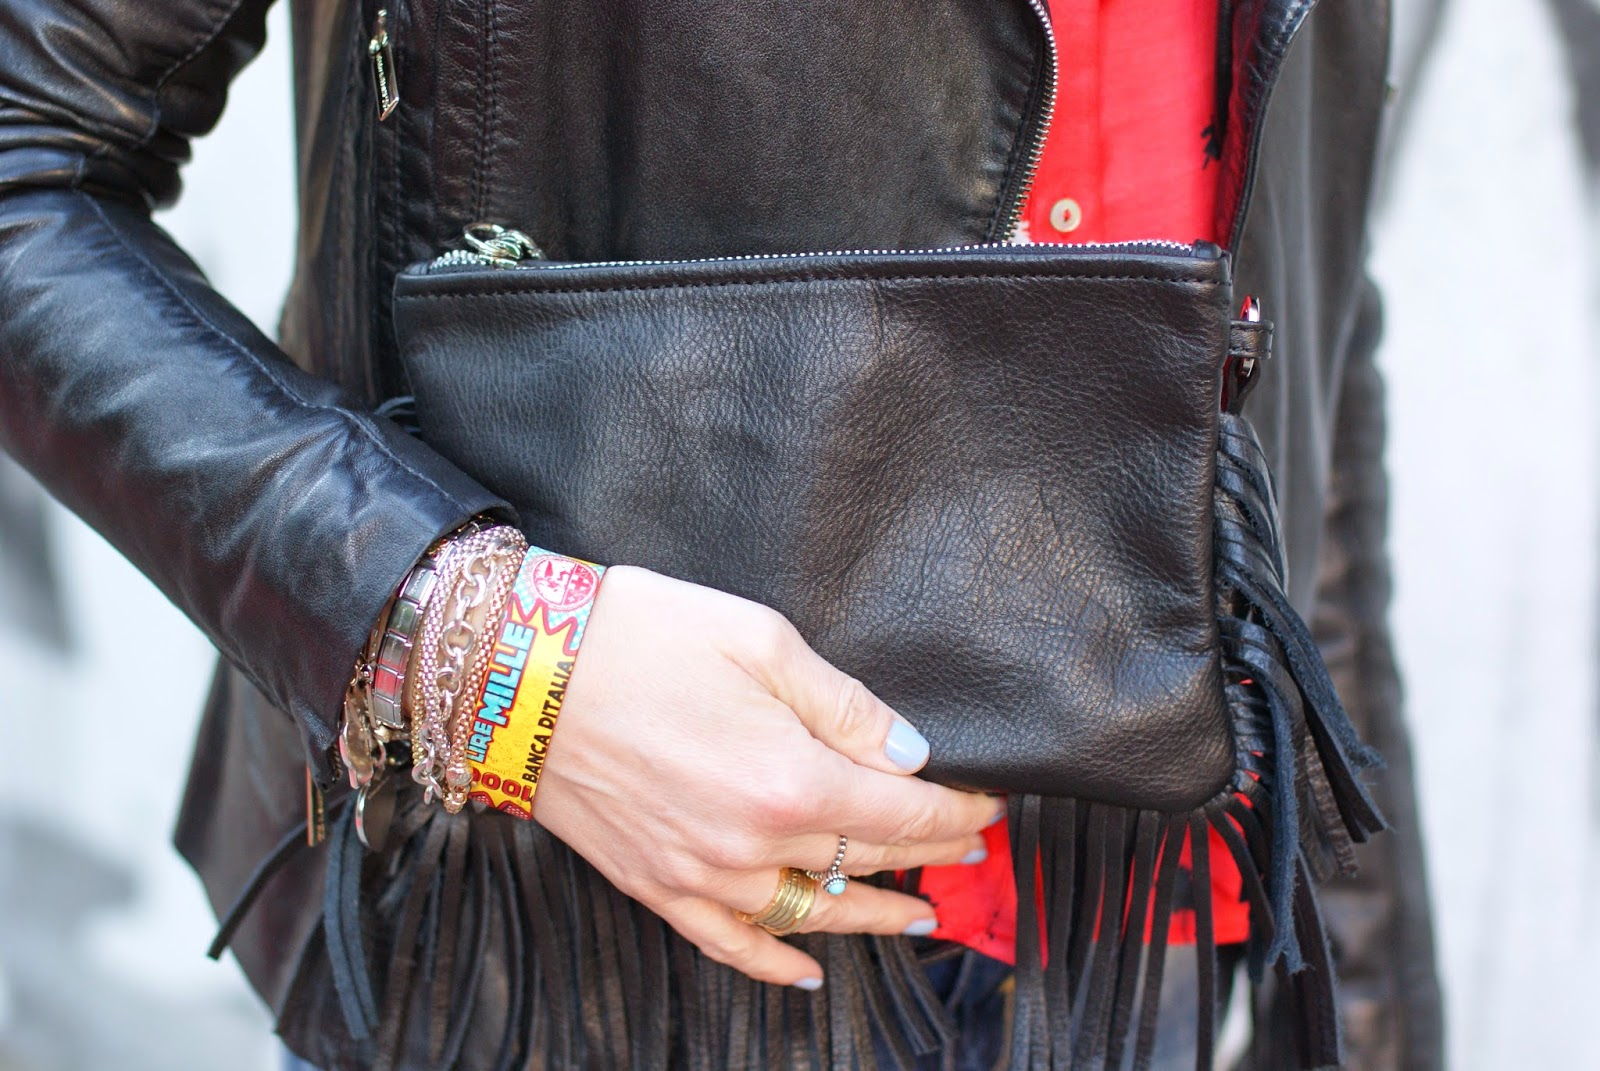 Fringed clutch, Carla G borsa frange, Mille Lire Montessori POP bracelet, Fashion and Cookies, fashion blogger